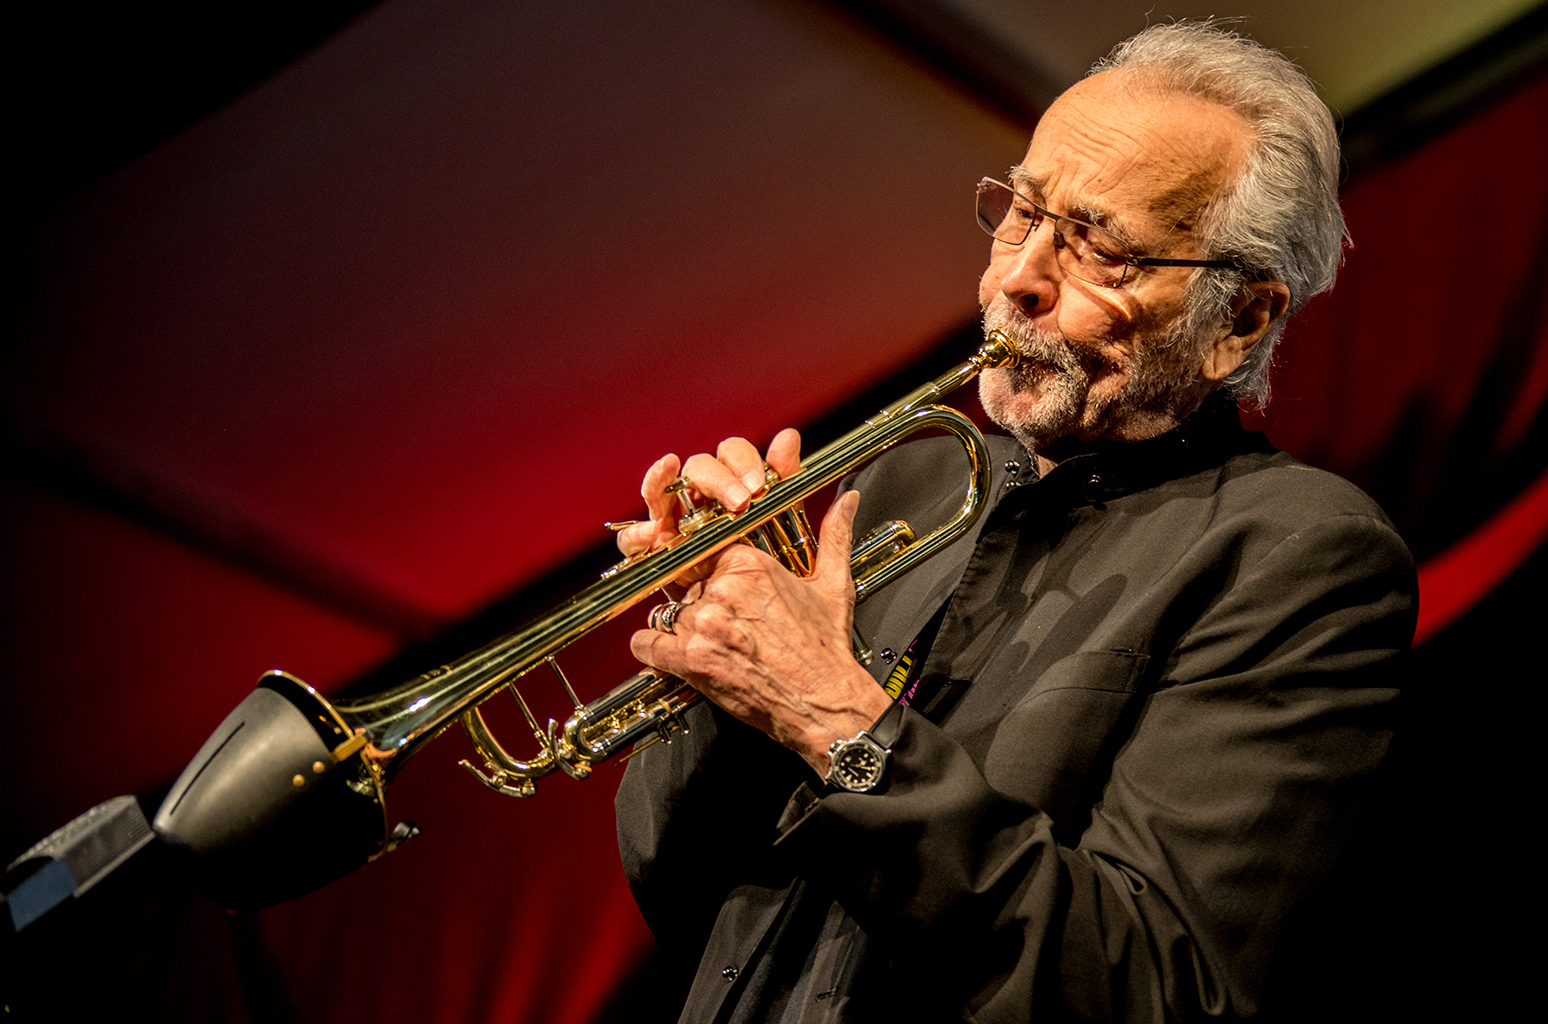 Herb Alpert Releasing New Christmas Album - My Merry Christmas